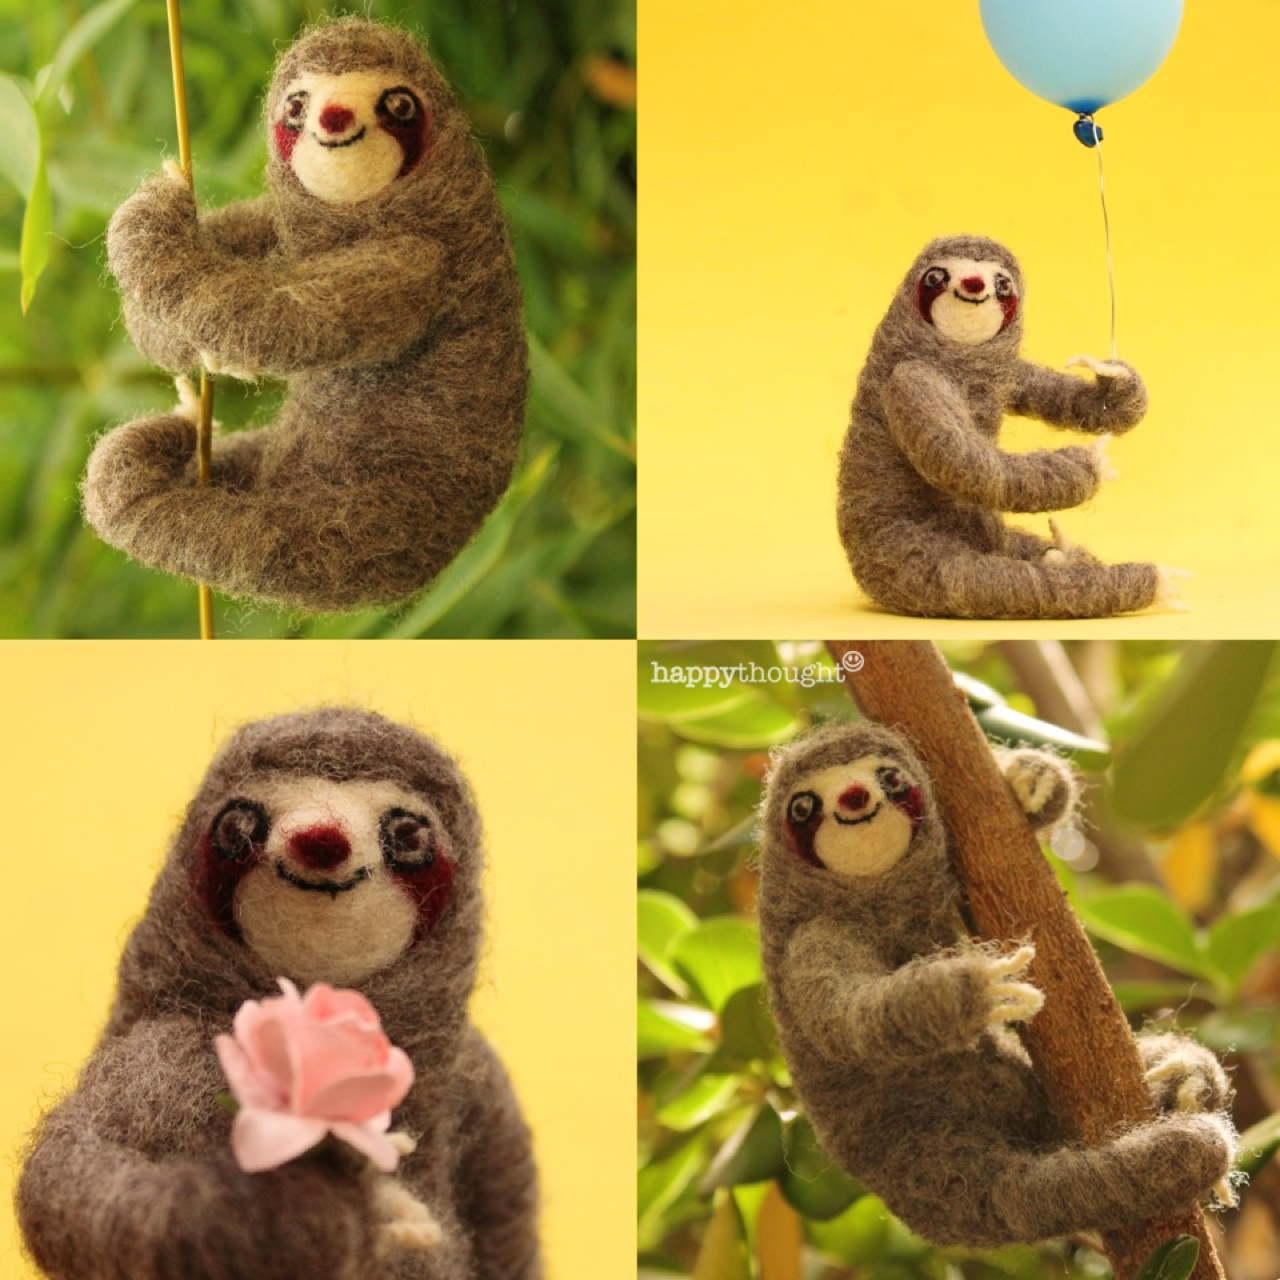 Take it easy and get in touch with your inner sloth. Step-by-step tutorials on making these needle felt sloths